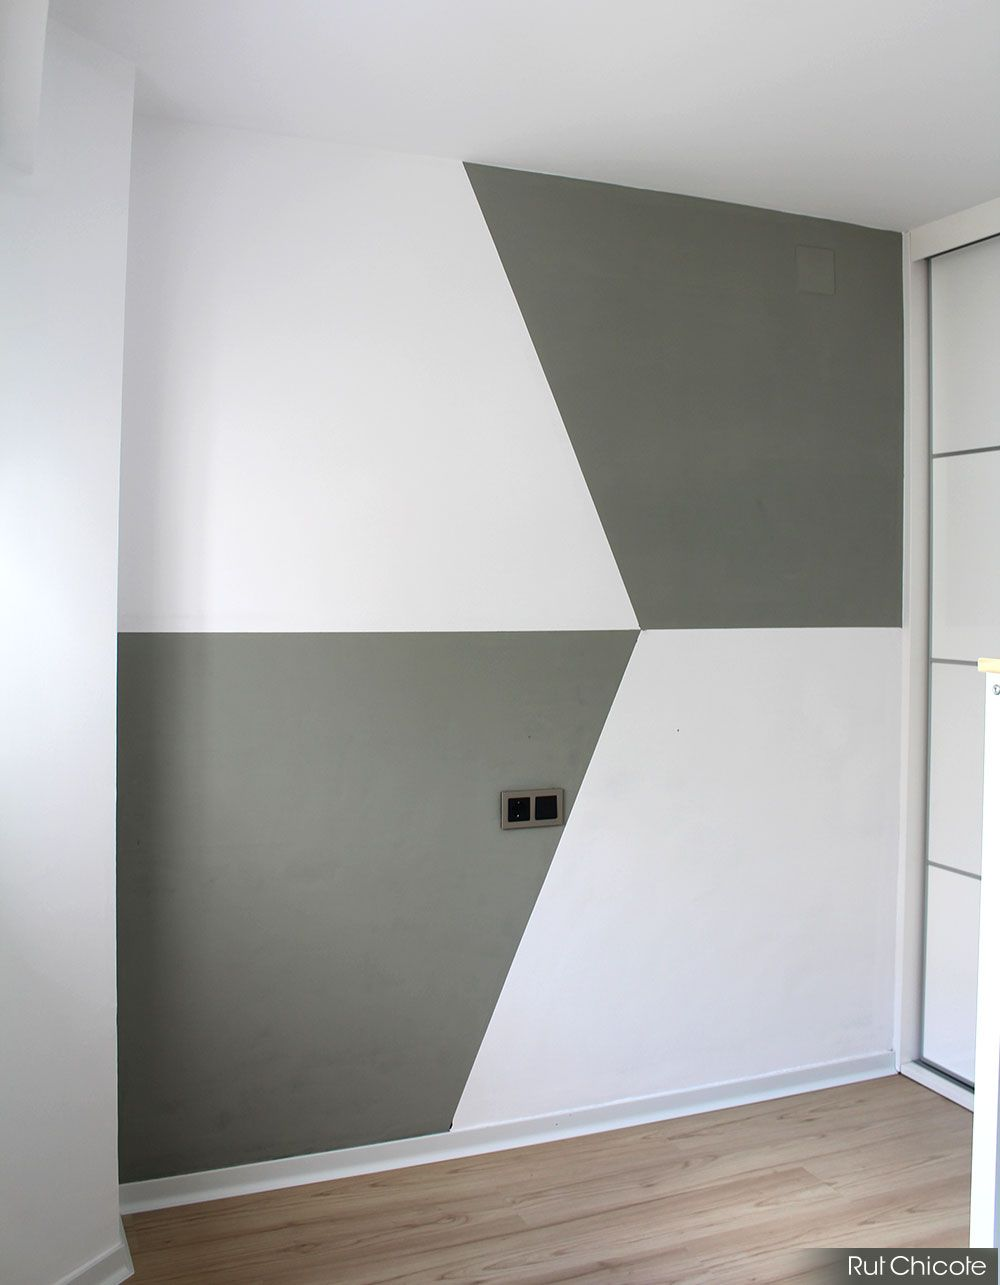 Qu te parece decorar la pared con figuras geom tricas for Fotos paredes pintadas